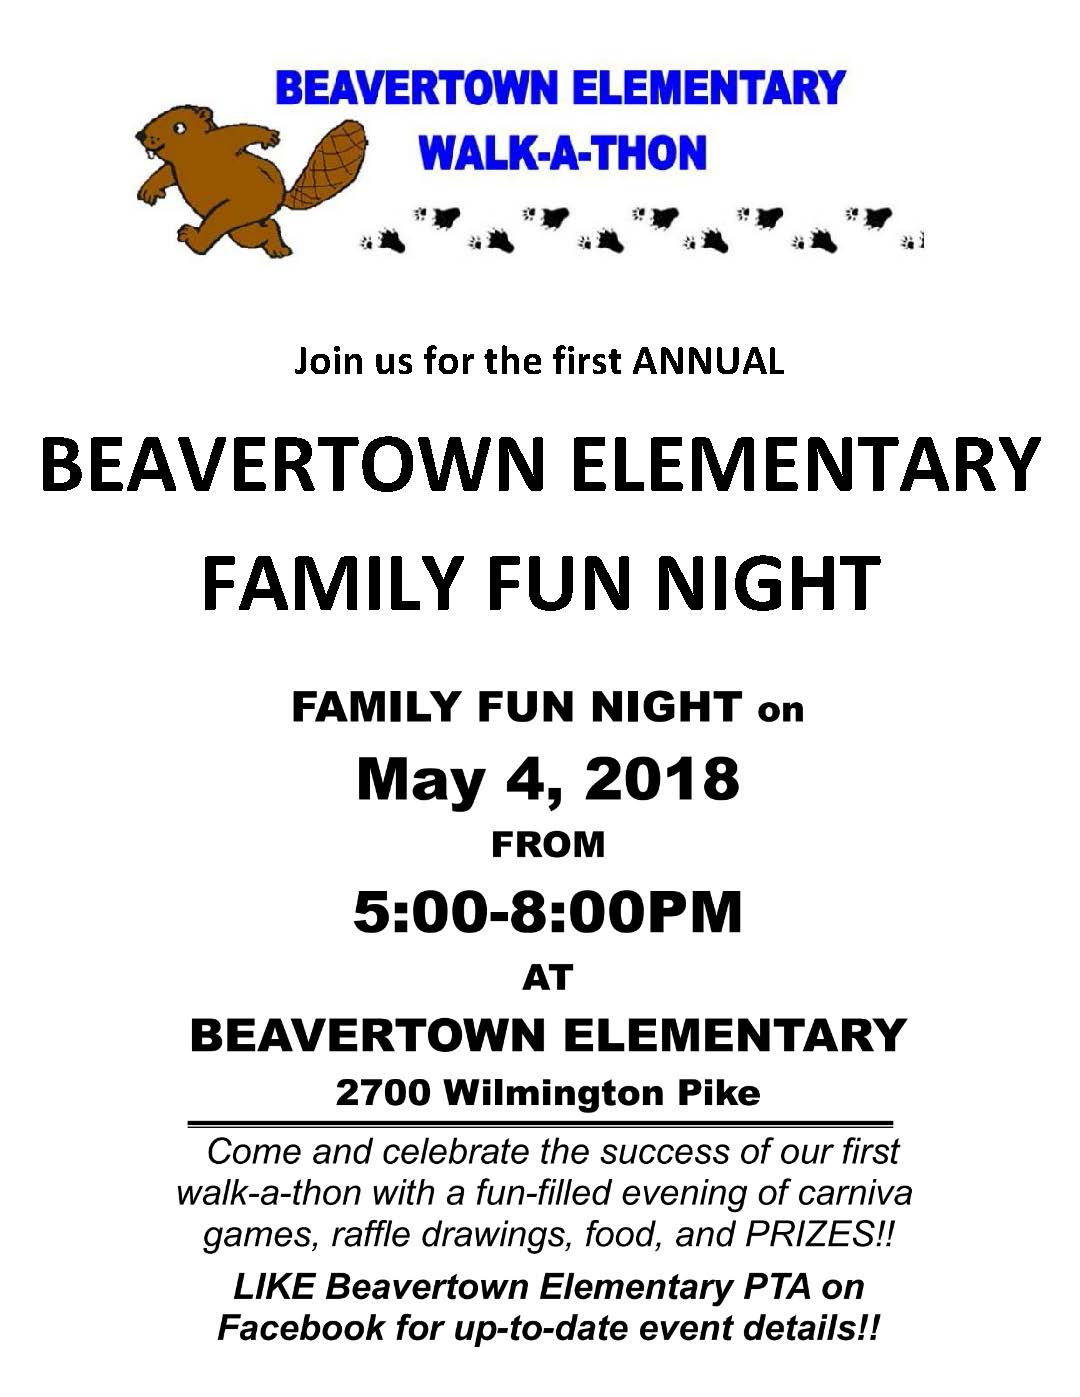 Beavertown Elementary Family Fun Night is Friday, May 4